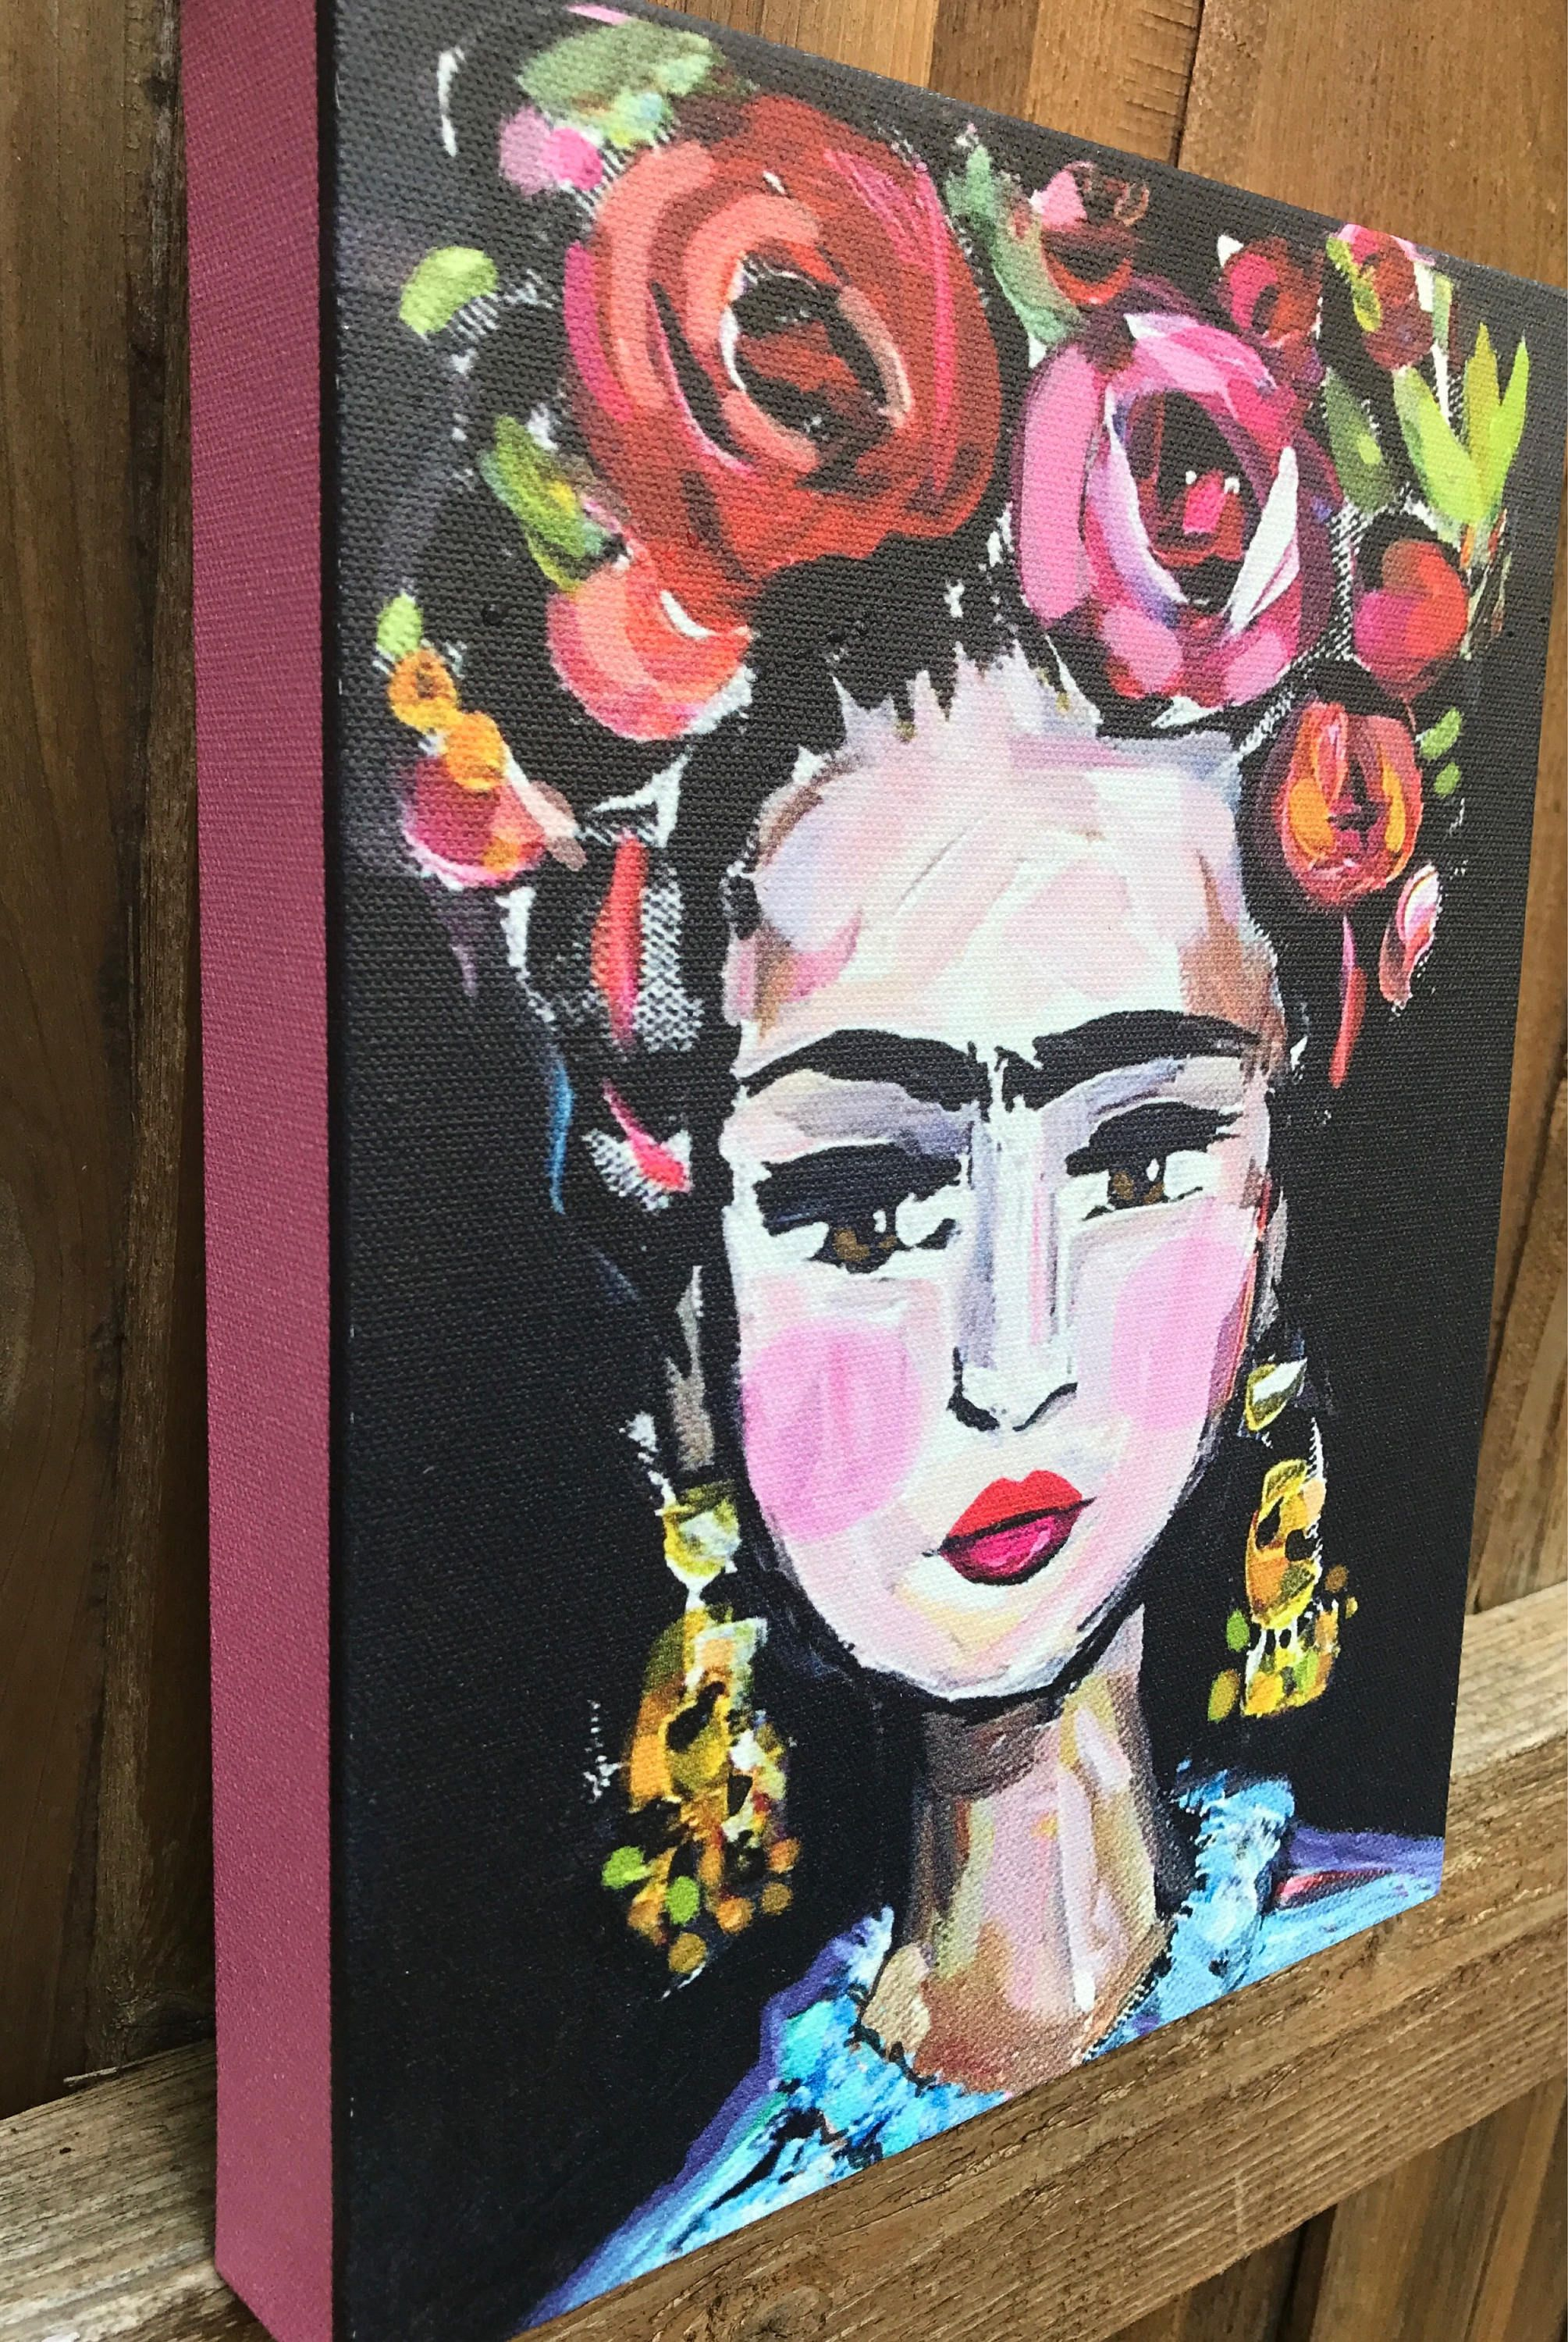 Frida Kahlo Pinturas Frida Print On Canvas Pink Sides High Profile Canvas